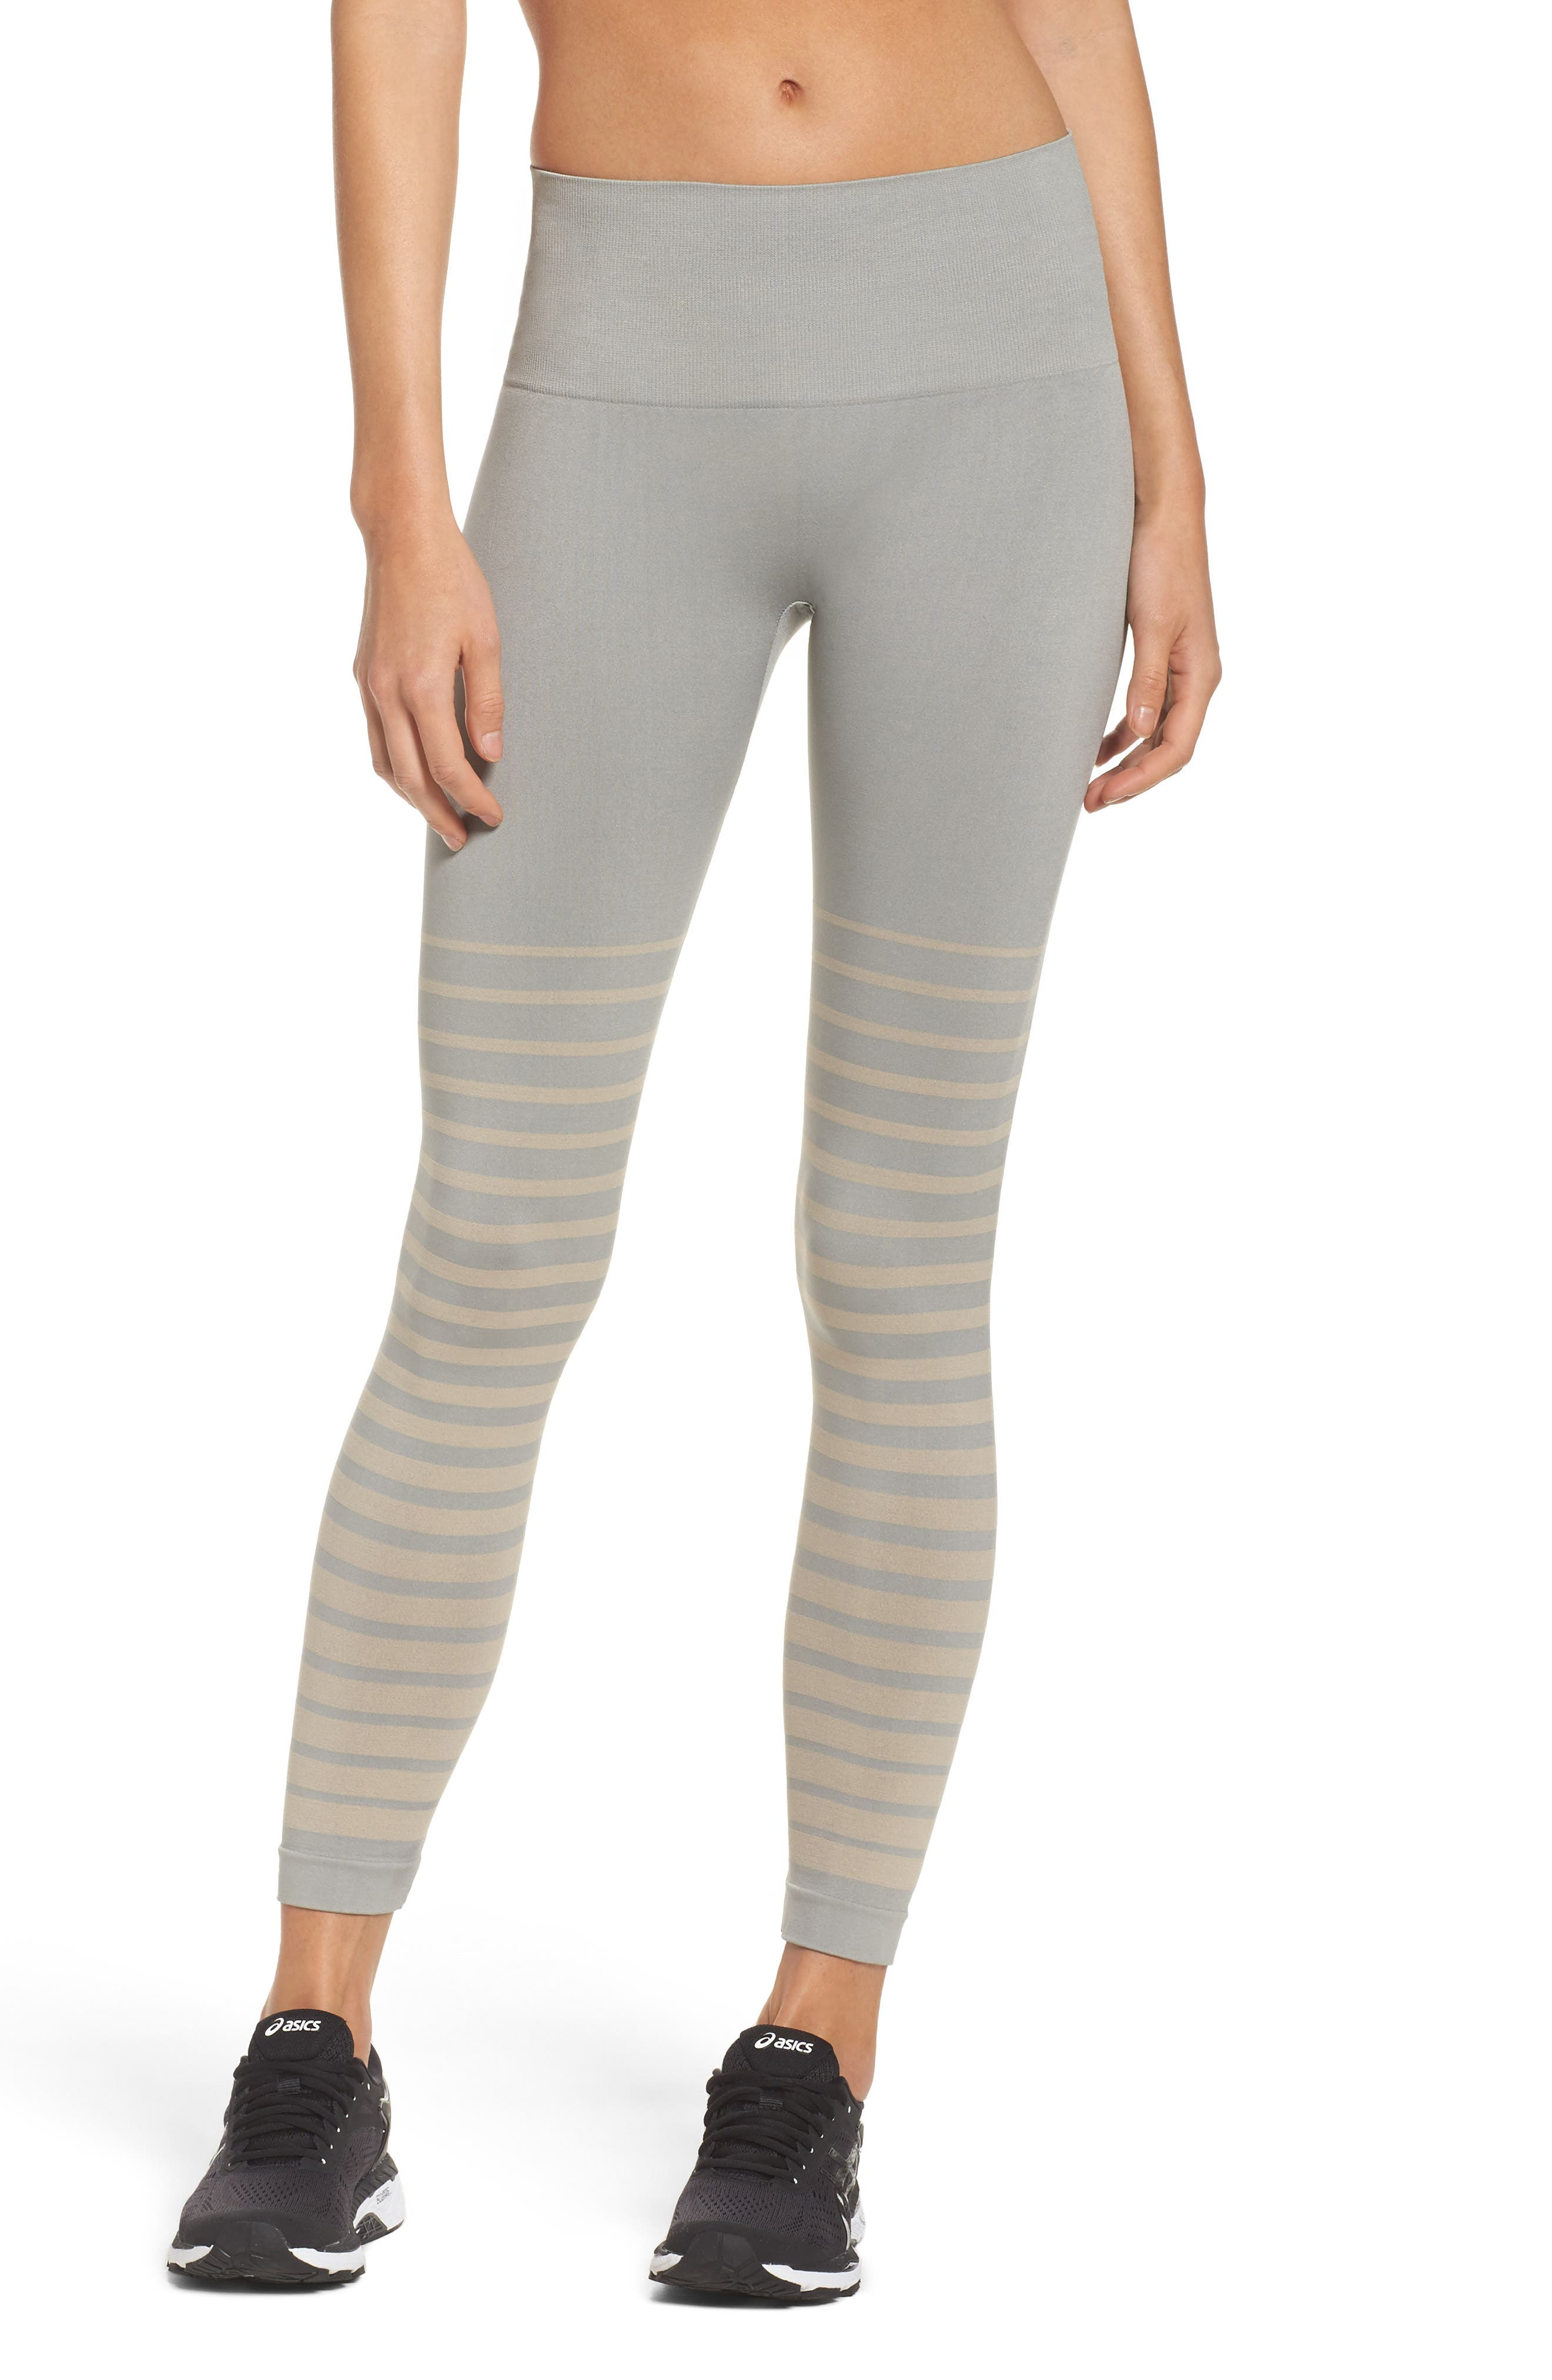 Front Runner High Waist Leggings,                             Main thumbnail 1, color,                             Wild Dove And Pink Tint